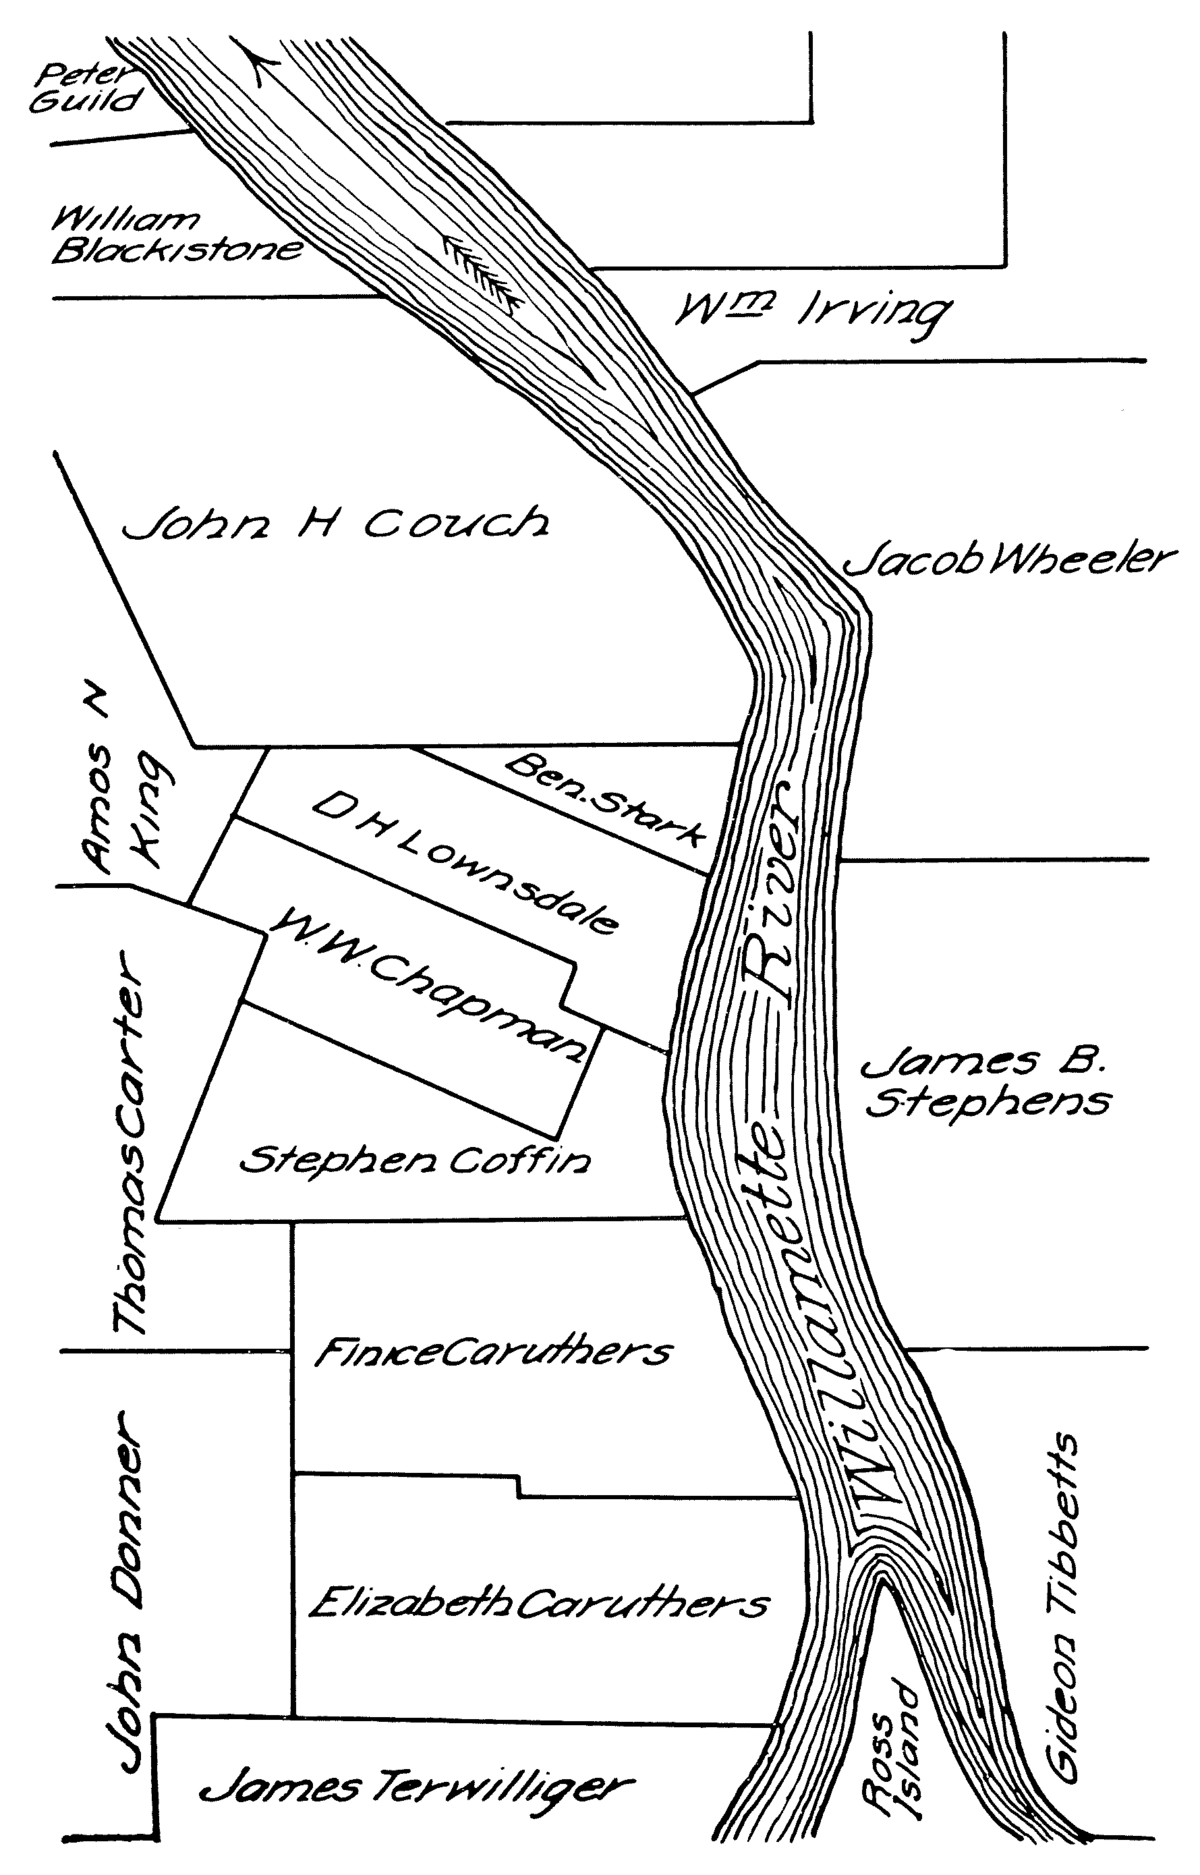 File:Map of Portland, Oregon land claims from Gaston book